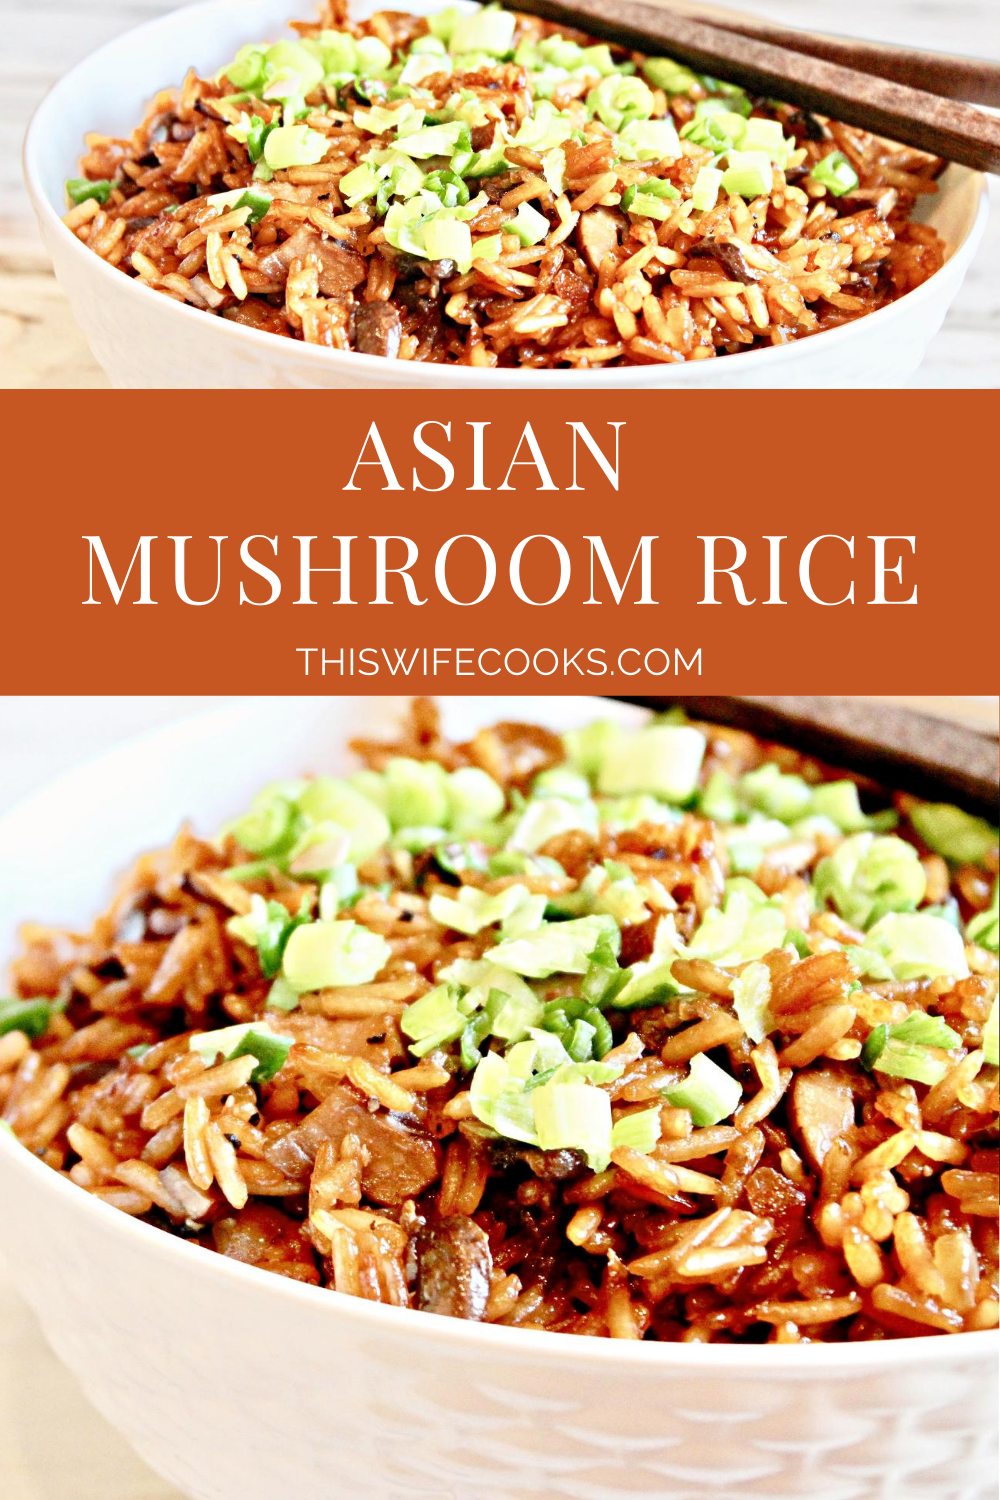 Asian Mushroom Rice ~ Earthy and aromatic, this one-pot rice side dish ready to serve in about 30 minutes. Toss in extra mushrooms, grilled tofu, or roasted veggies for a quick and easy main meal. via @thiswifecooks